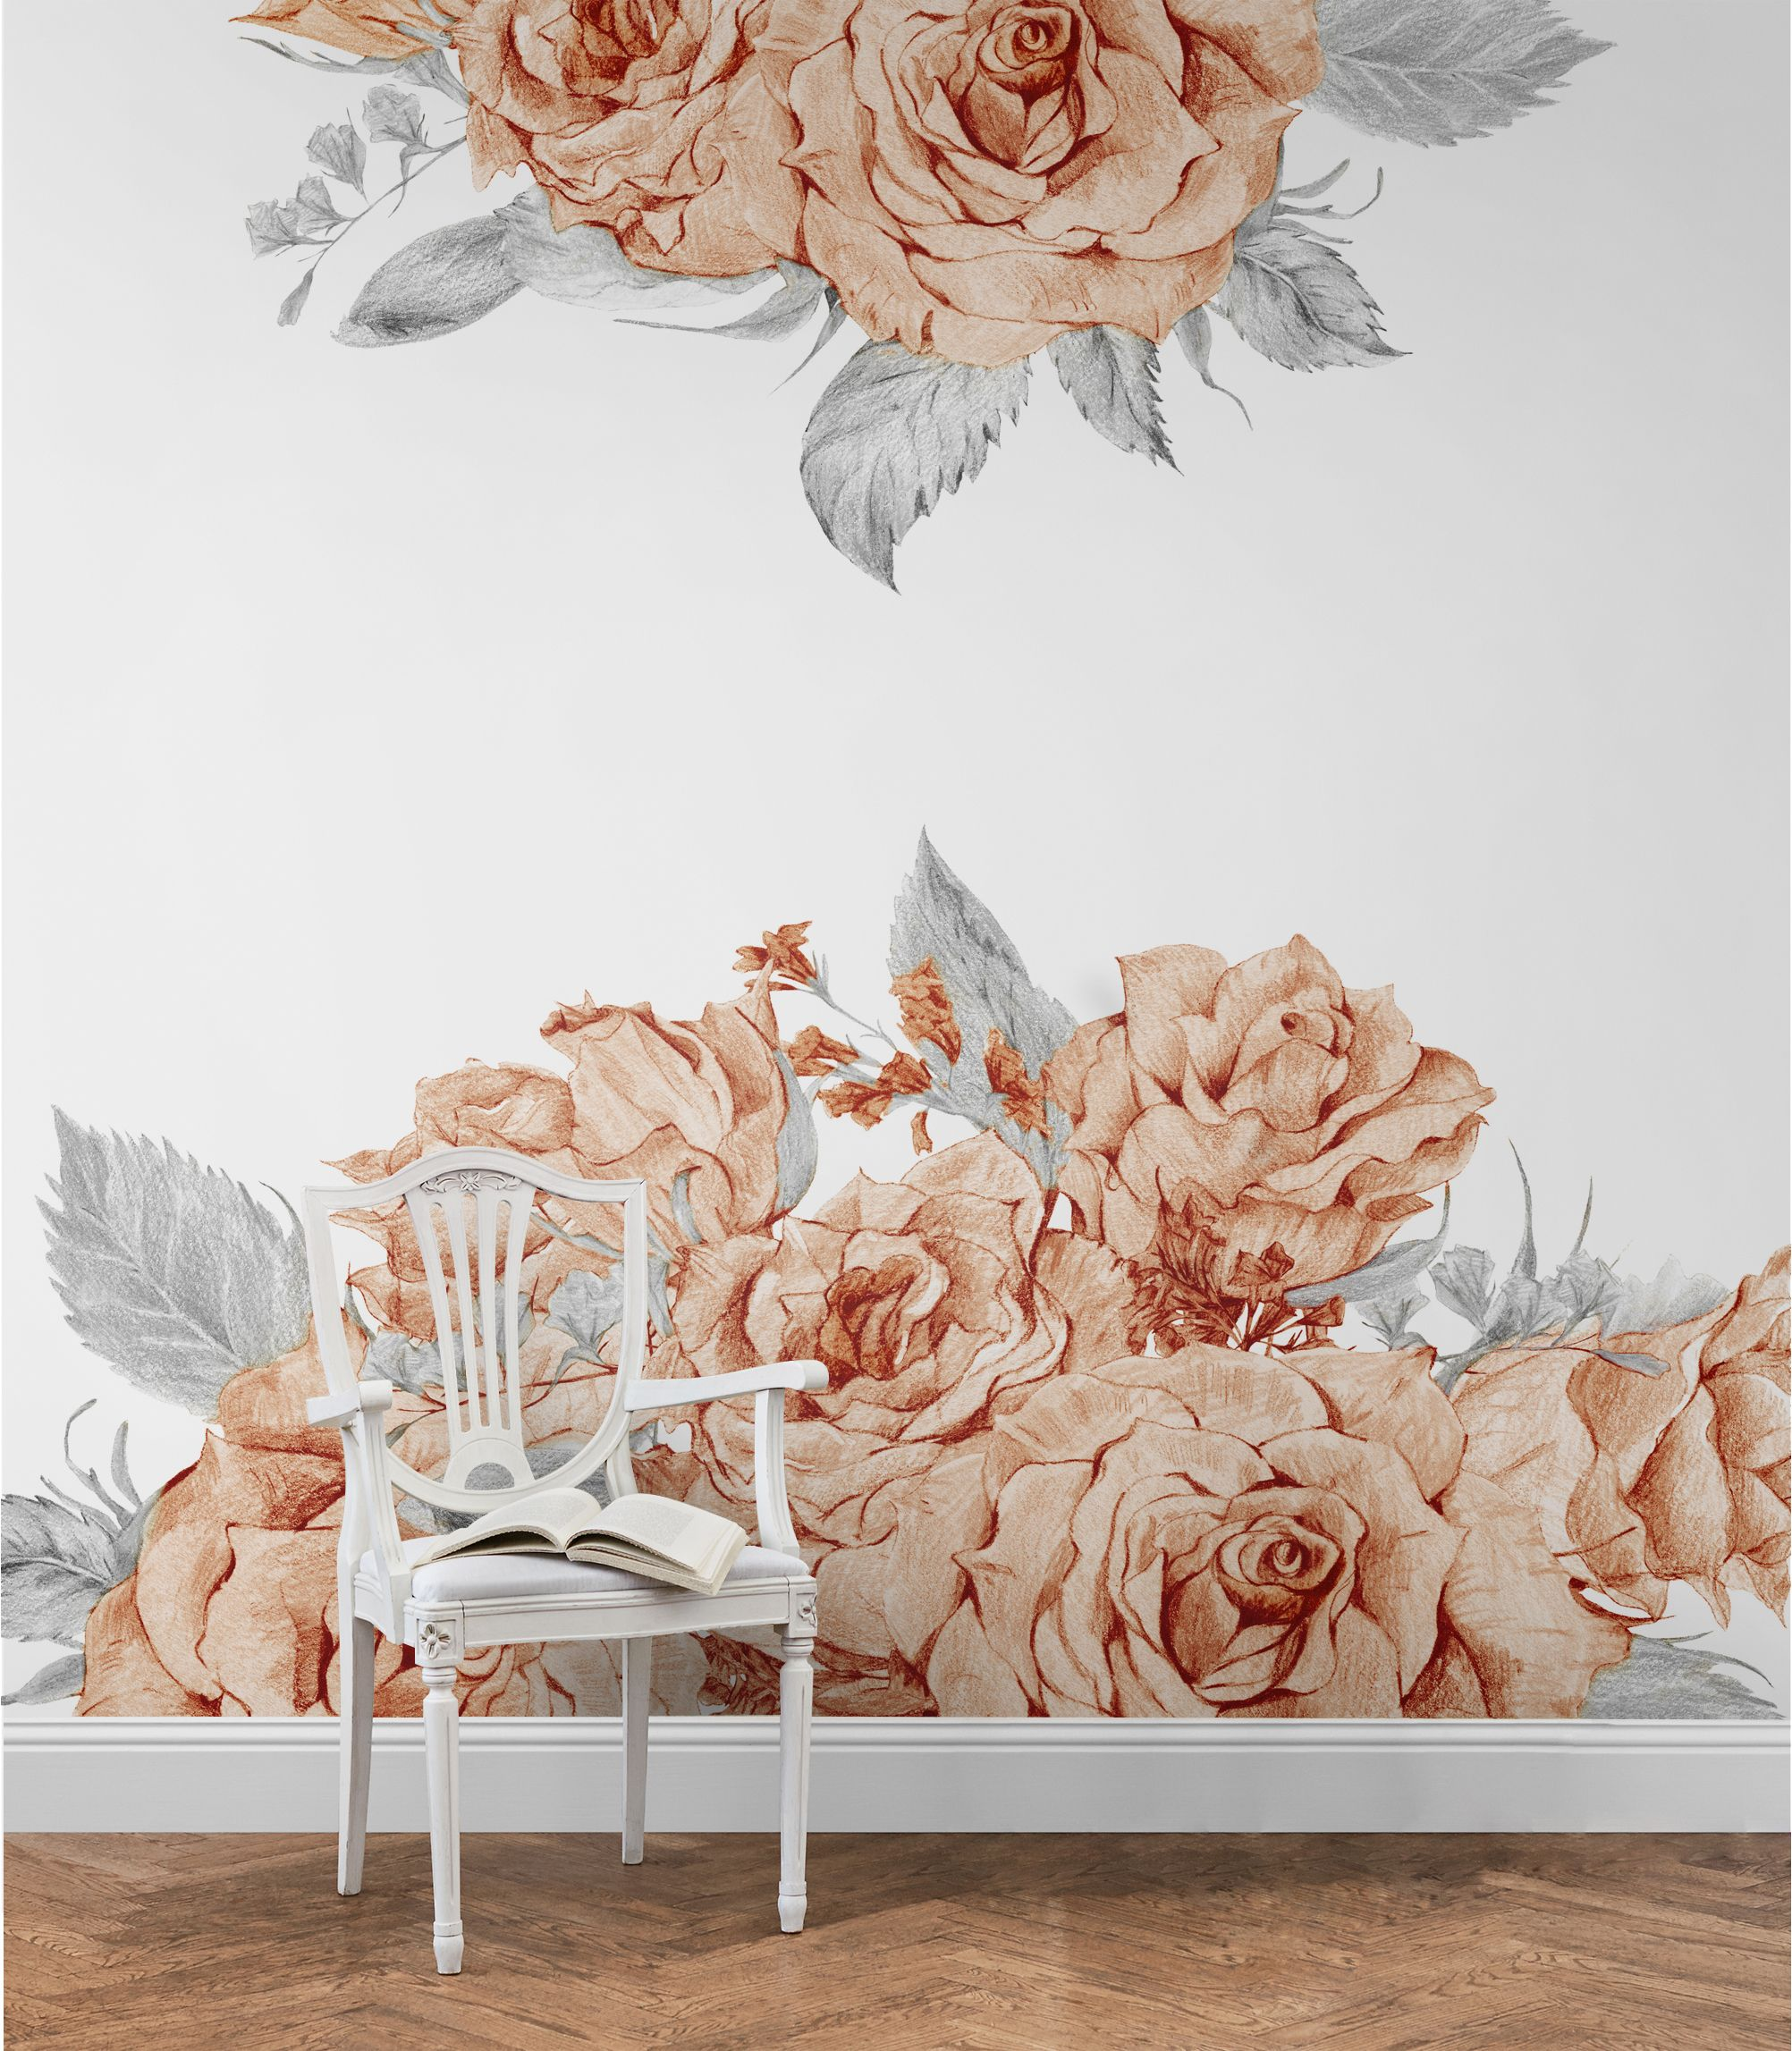 Blooming Rose Removable Wallpaper - Coloraydecorcom 9685X9685$260